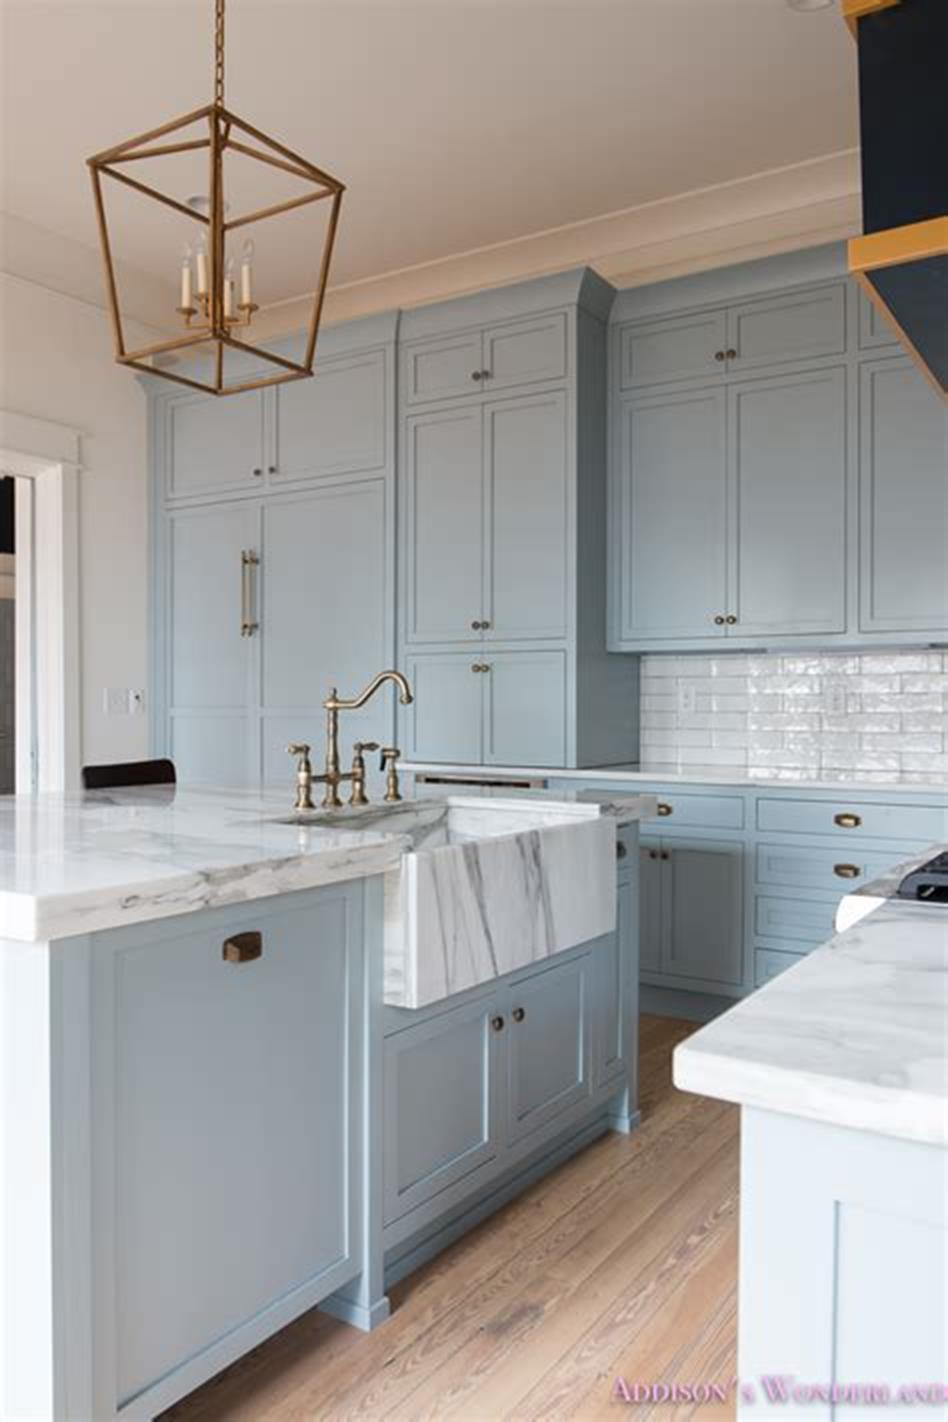 35 Stunning Contemporary Kitchen Design Ideas Youll Love 52